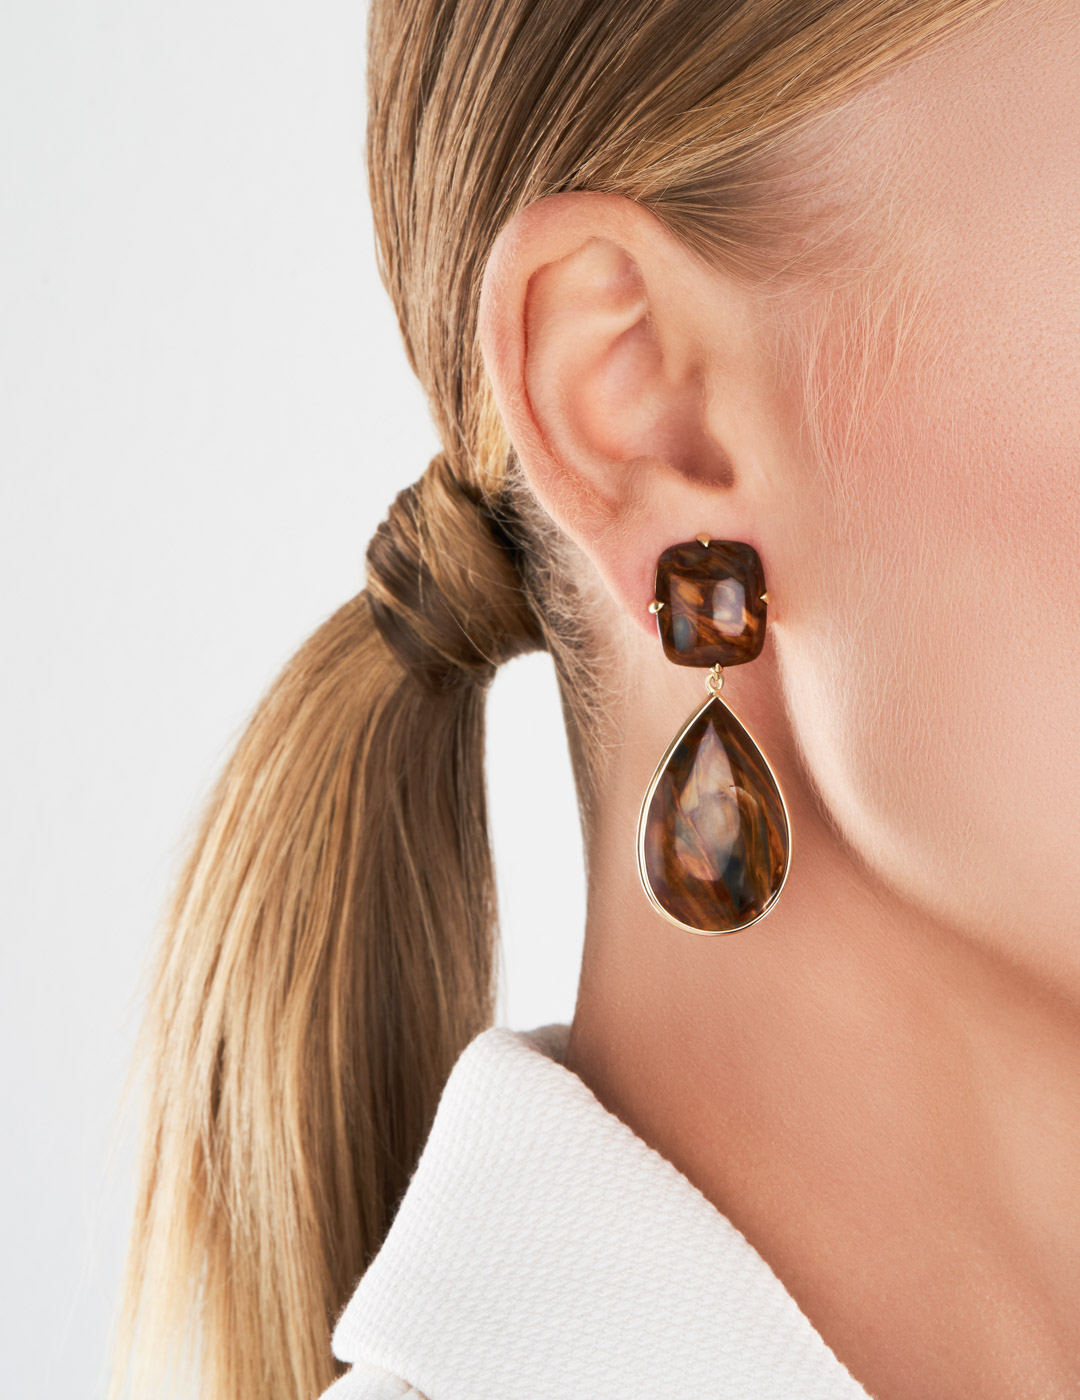 mish_products_earrings_Roadster-BrwnPieter-ER-2